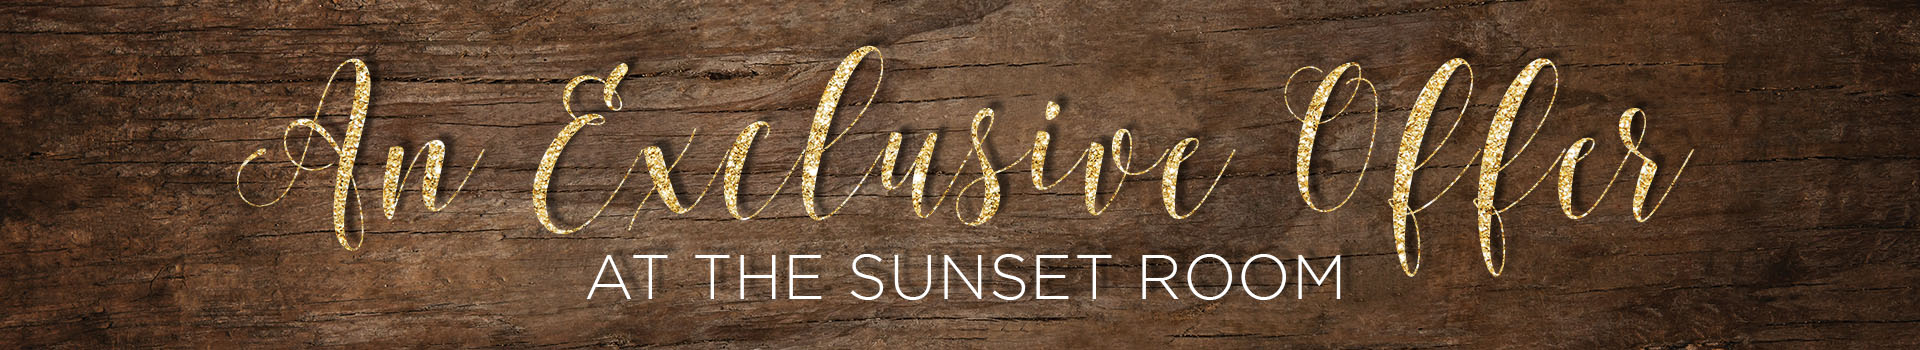 sunsetroom_wp_exclusive offer banner